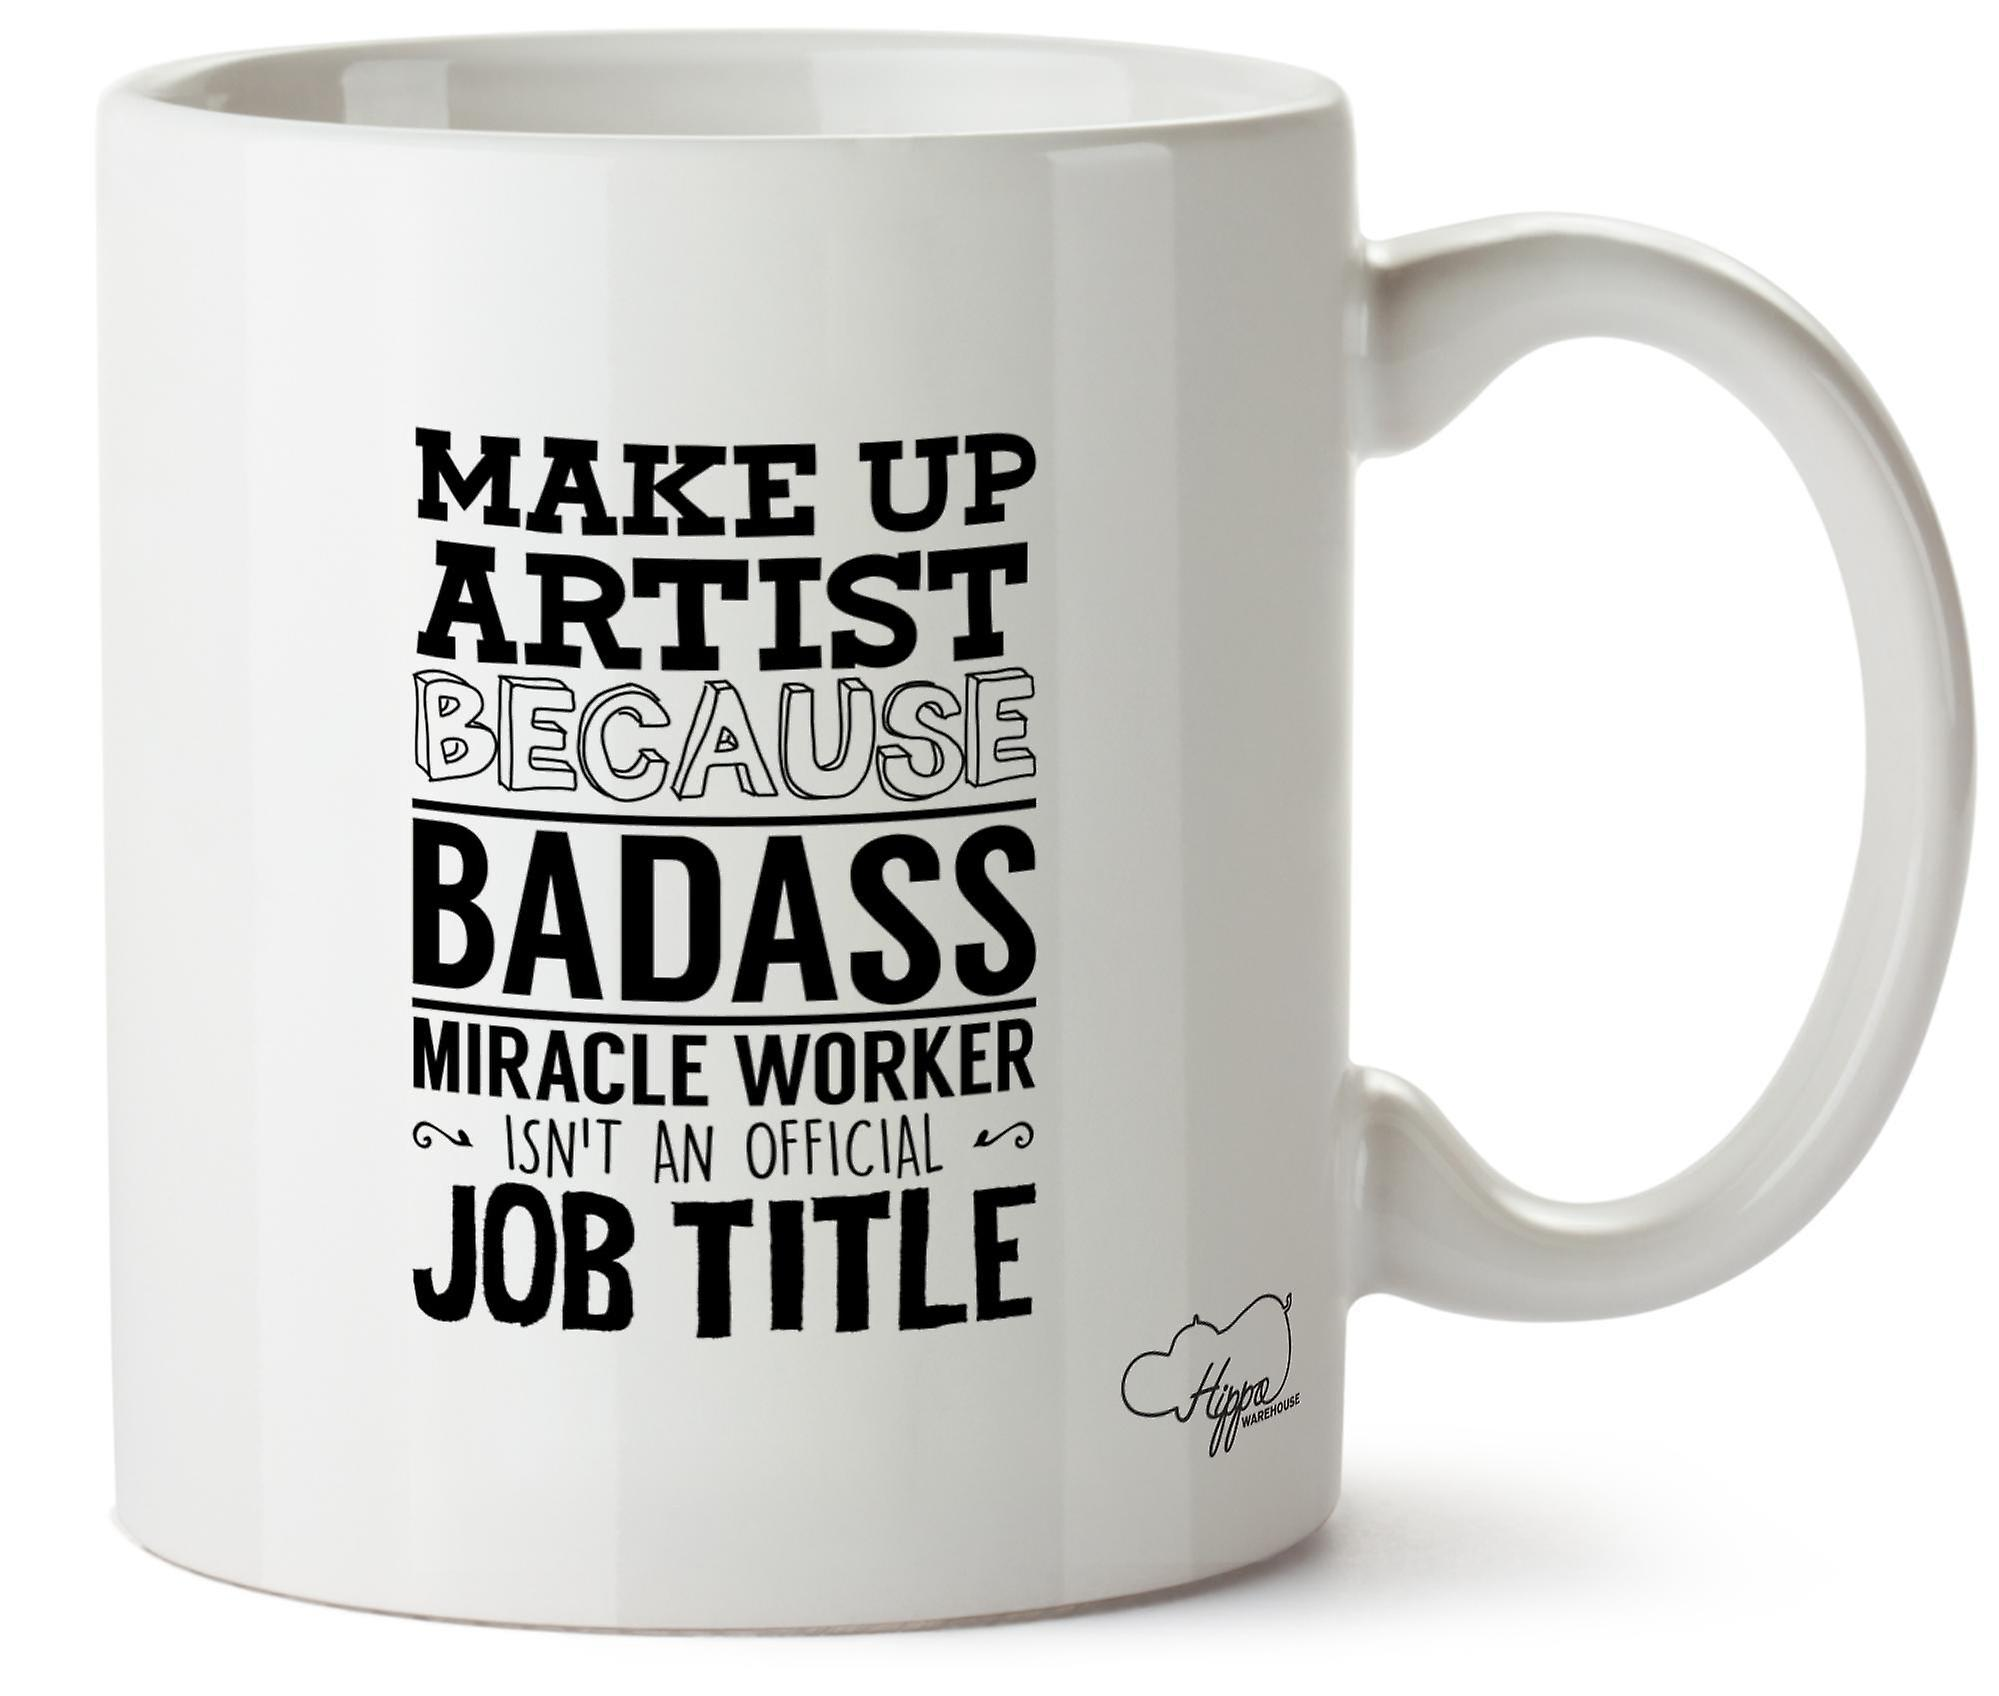 Tasse Worker Isn'tan Badass Car Maquilleuse Officiel Poste Miracle Hippowarehouse 10oz Céramique Imprimé En eBCdxo